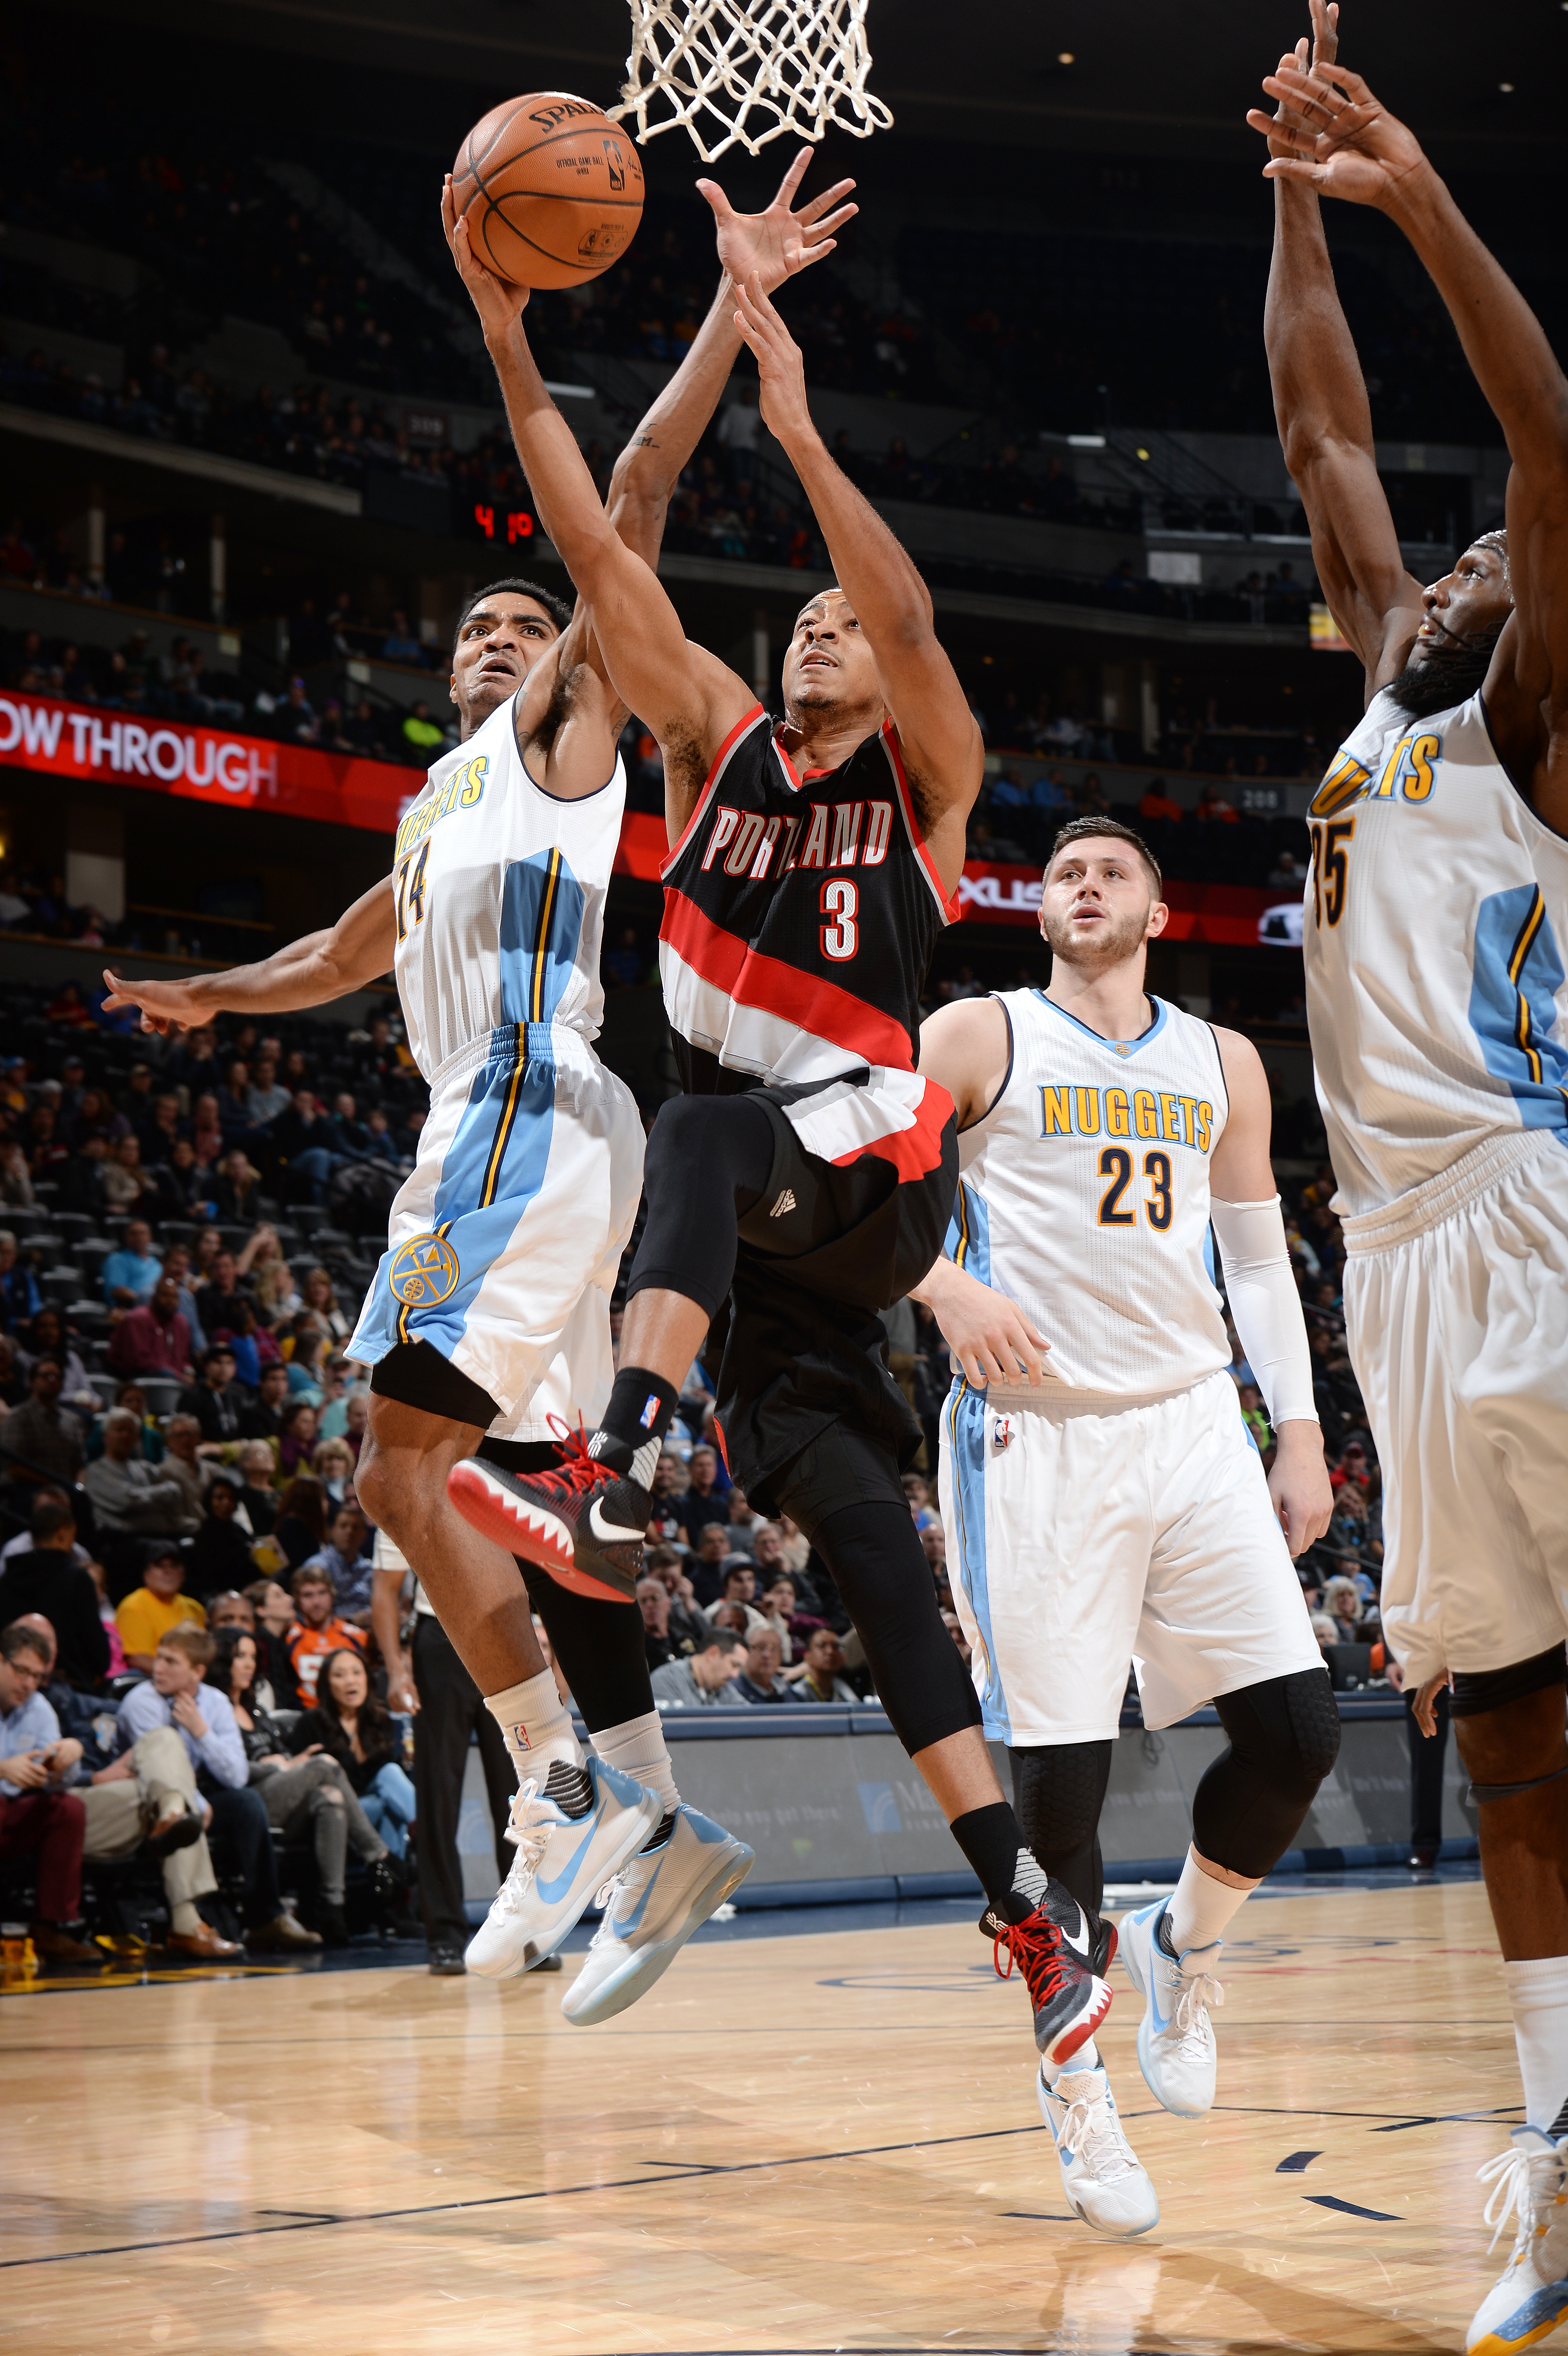 DENVER, CO - JANUARY 3: C.J. McCollum #3 of the Portland Trail Blazers goes to the basket during the game against the Denver Nuggets on January 3, 2016 at the Pepsi Center in Denver, Colorado. (Photo by Garrett Ellwood/NBAE via Getty Images)